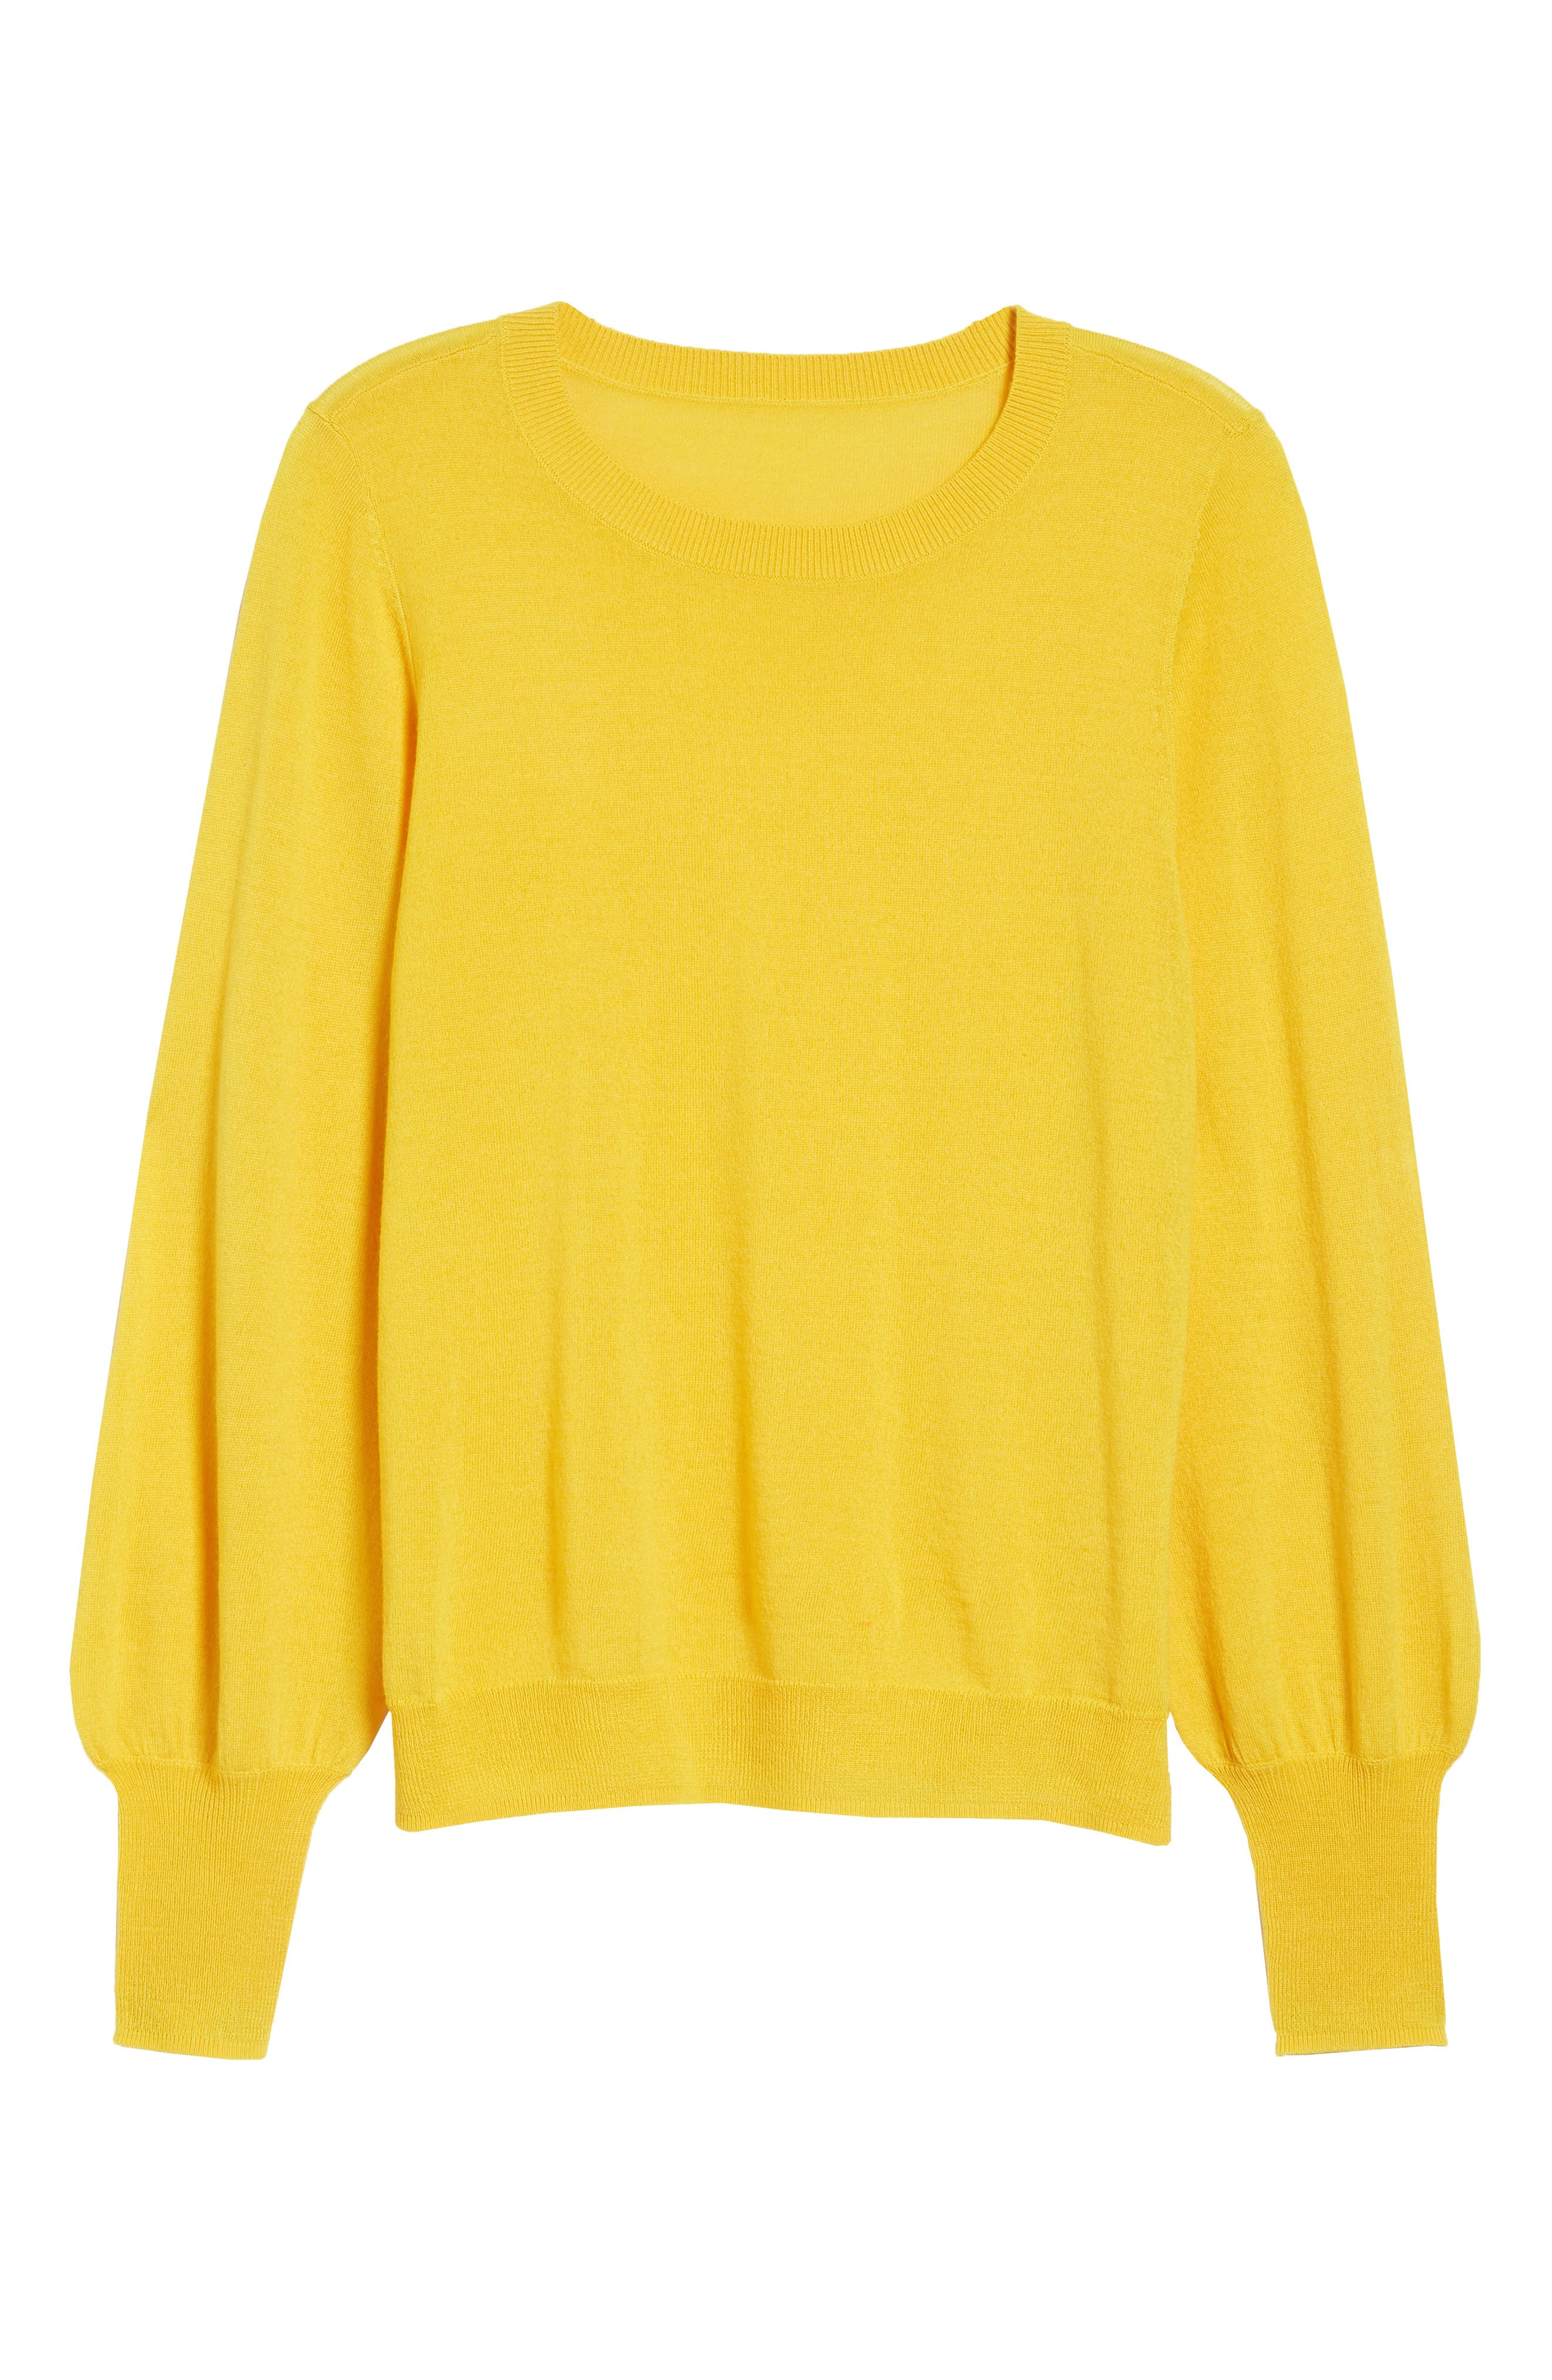 Puff Sleeve Sweater,                             Alternate thumbnail 60, color,